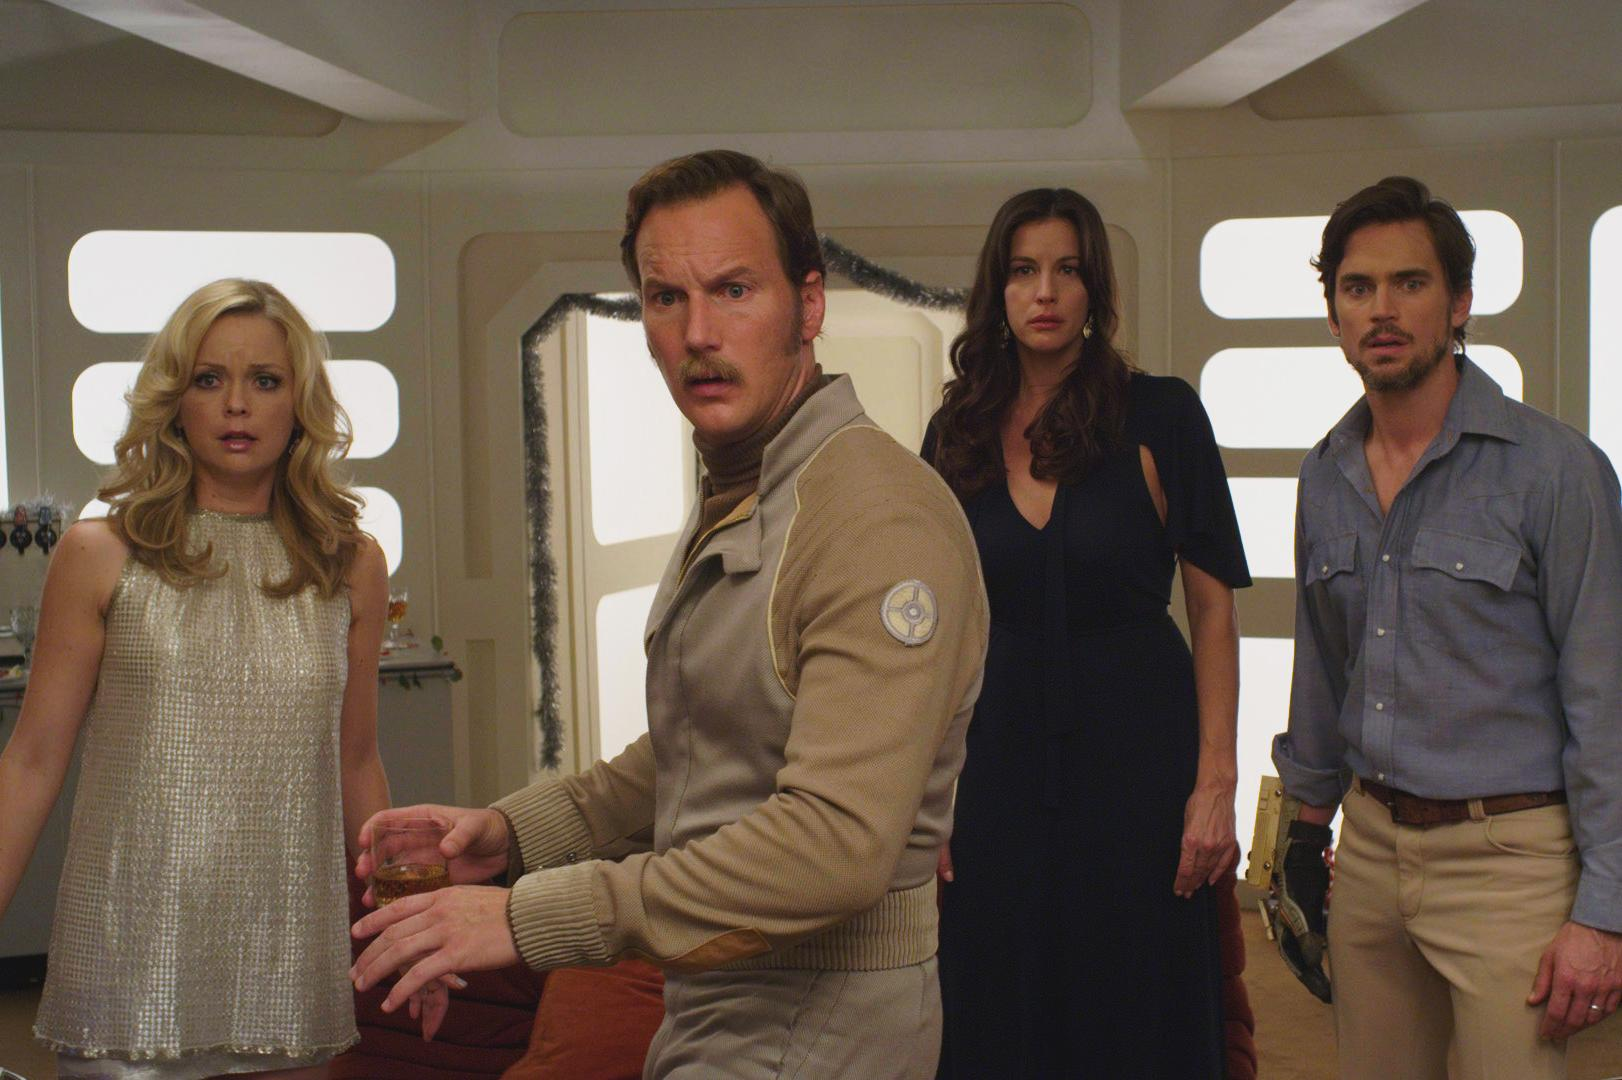 space station 76 liv tyler patrick wilson